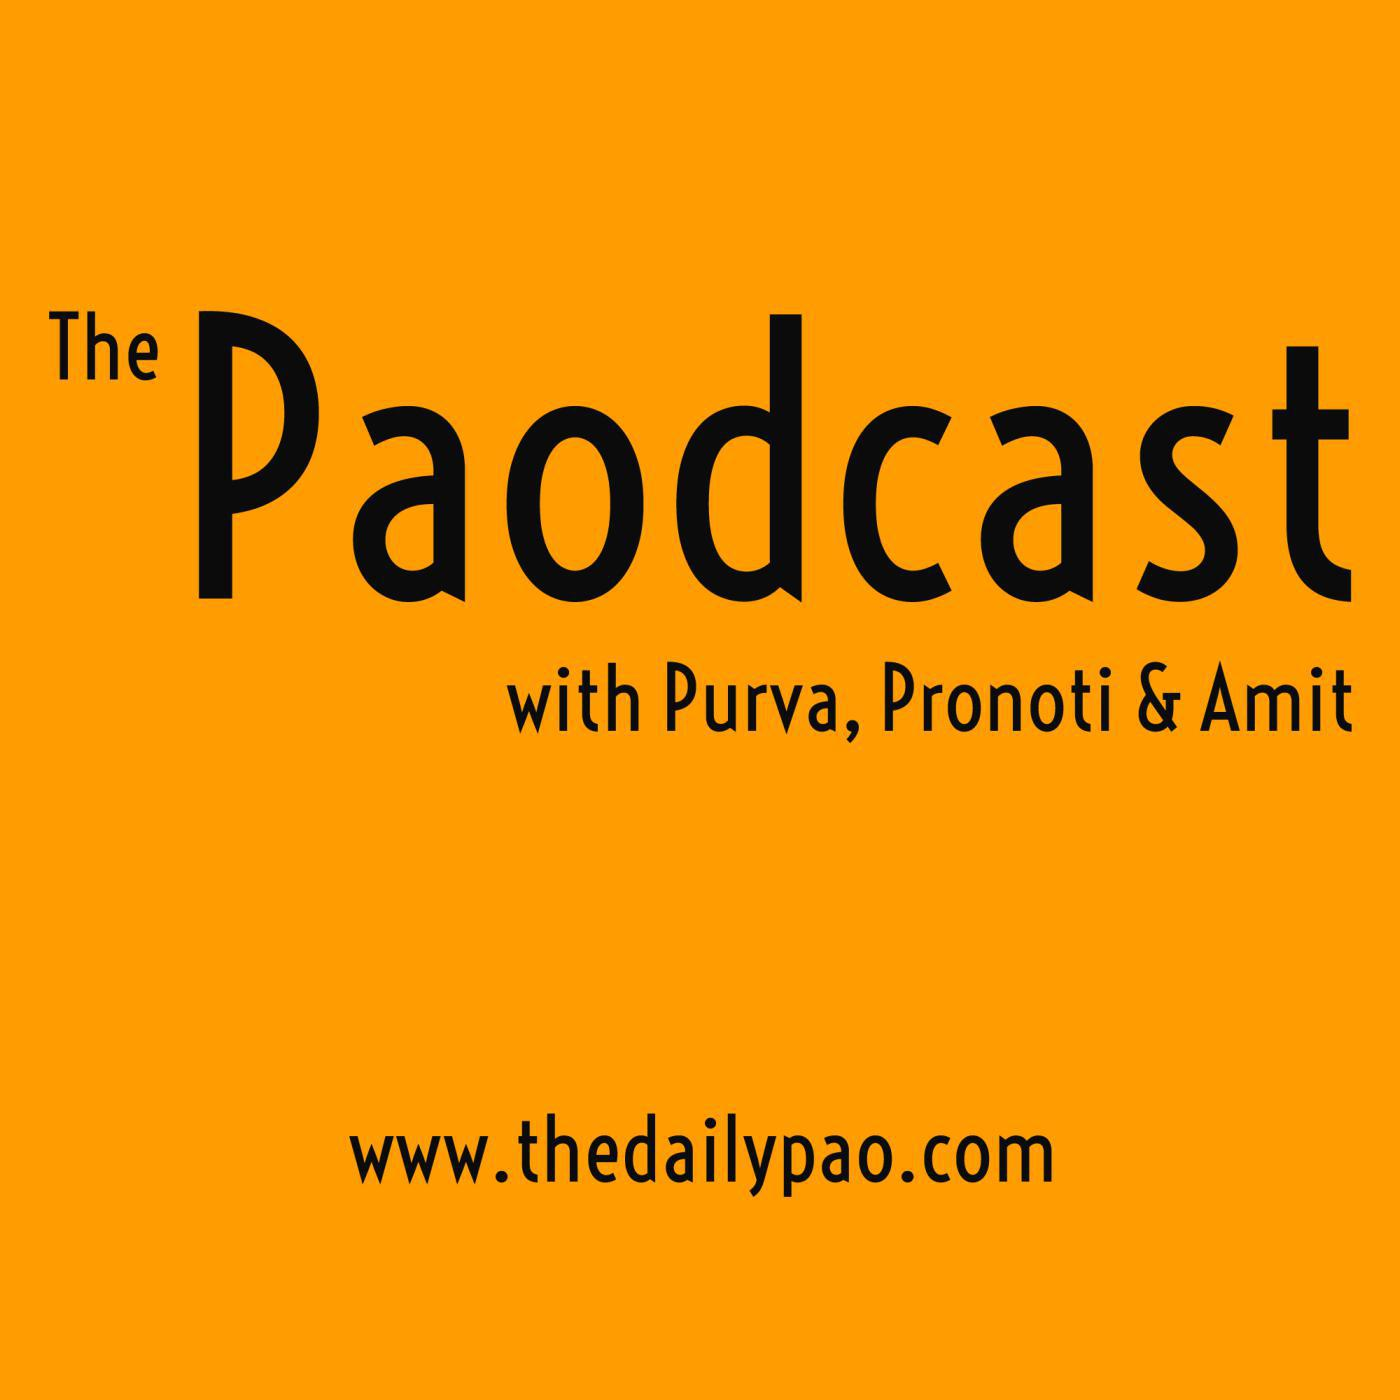 The Paodcast |